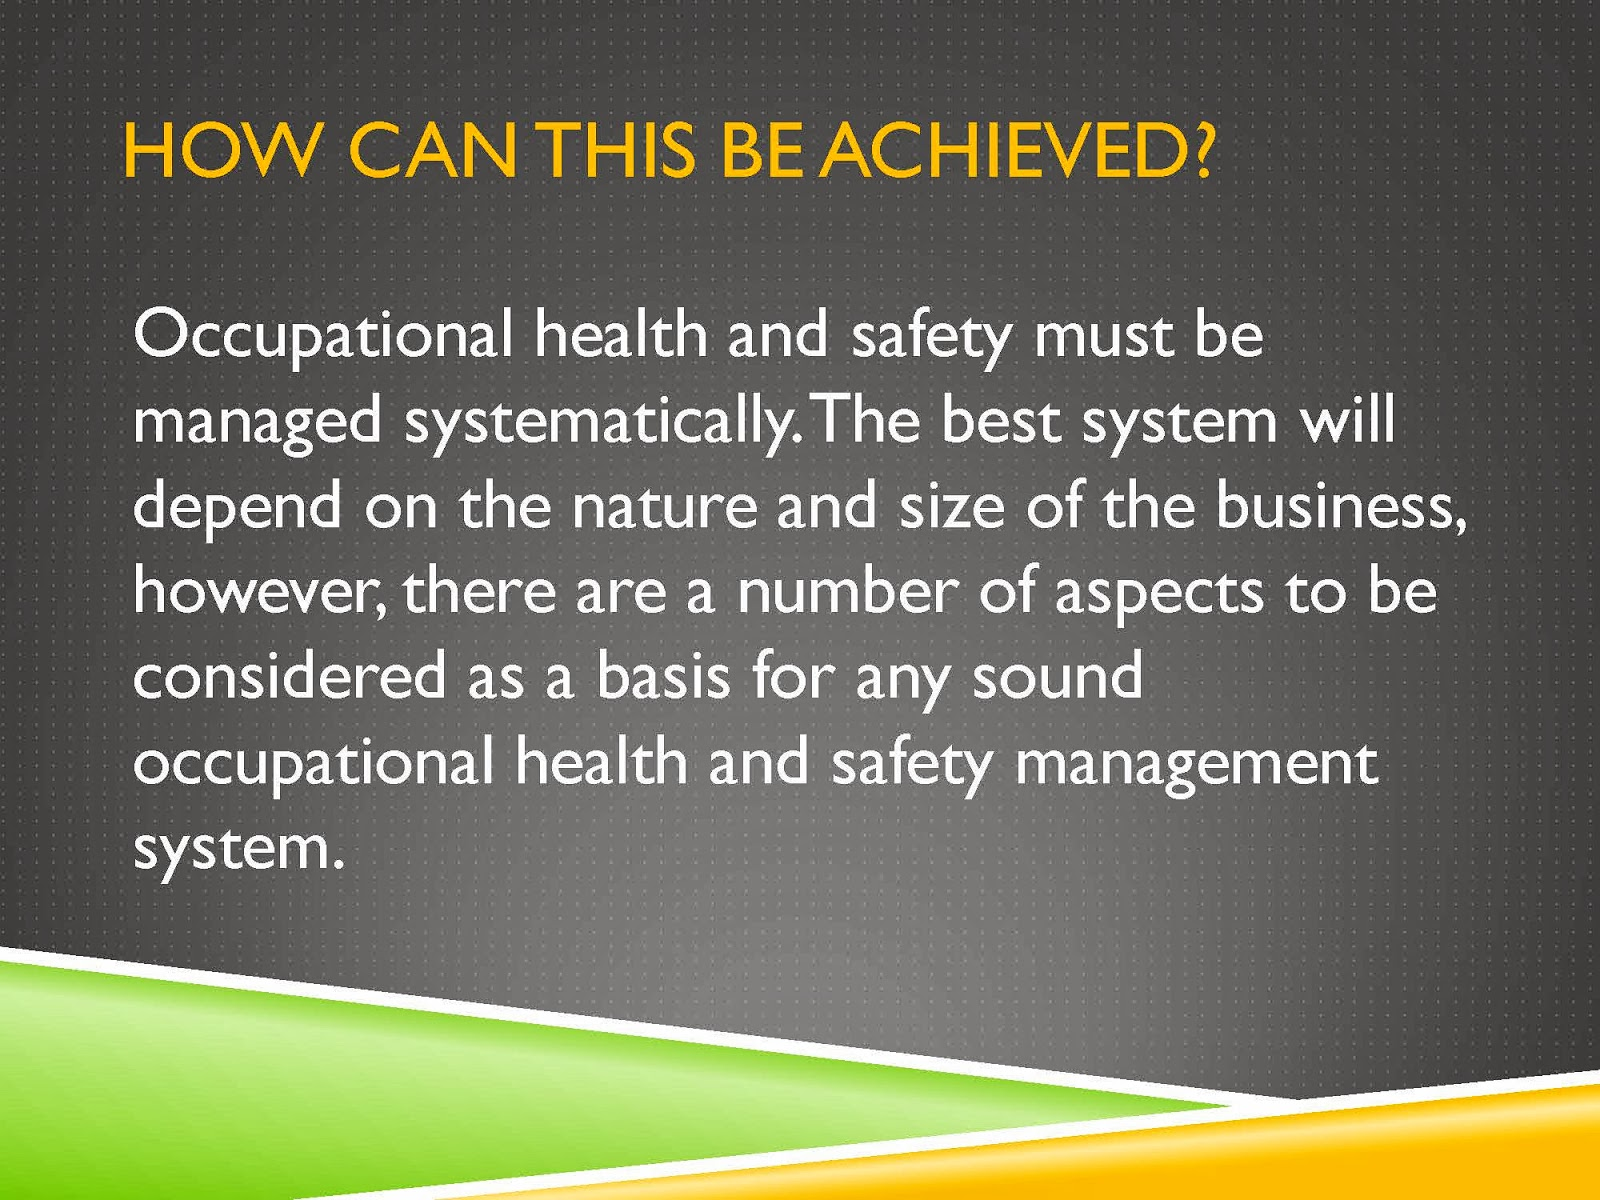 ACHIEVE OCCUPATIONAL HEALTH AND SAFETY